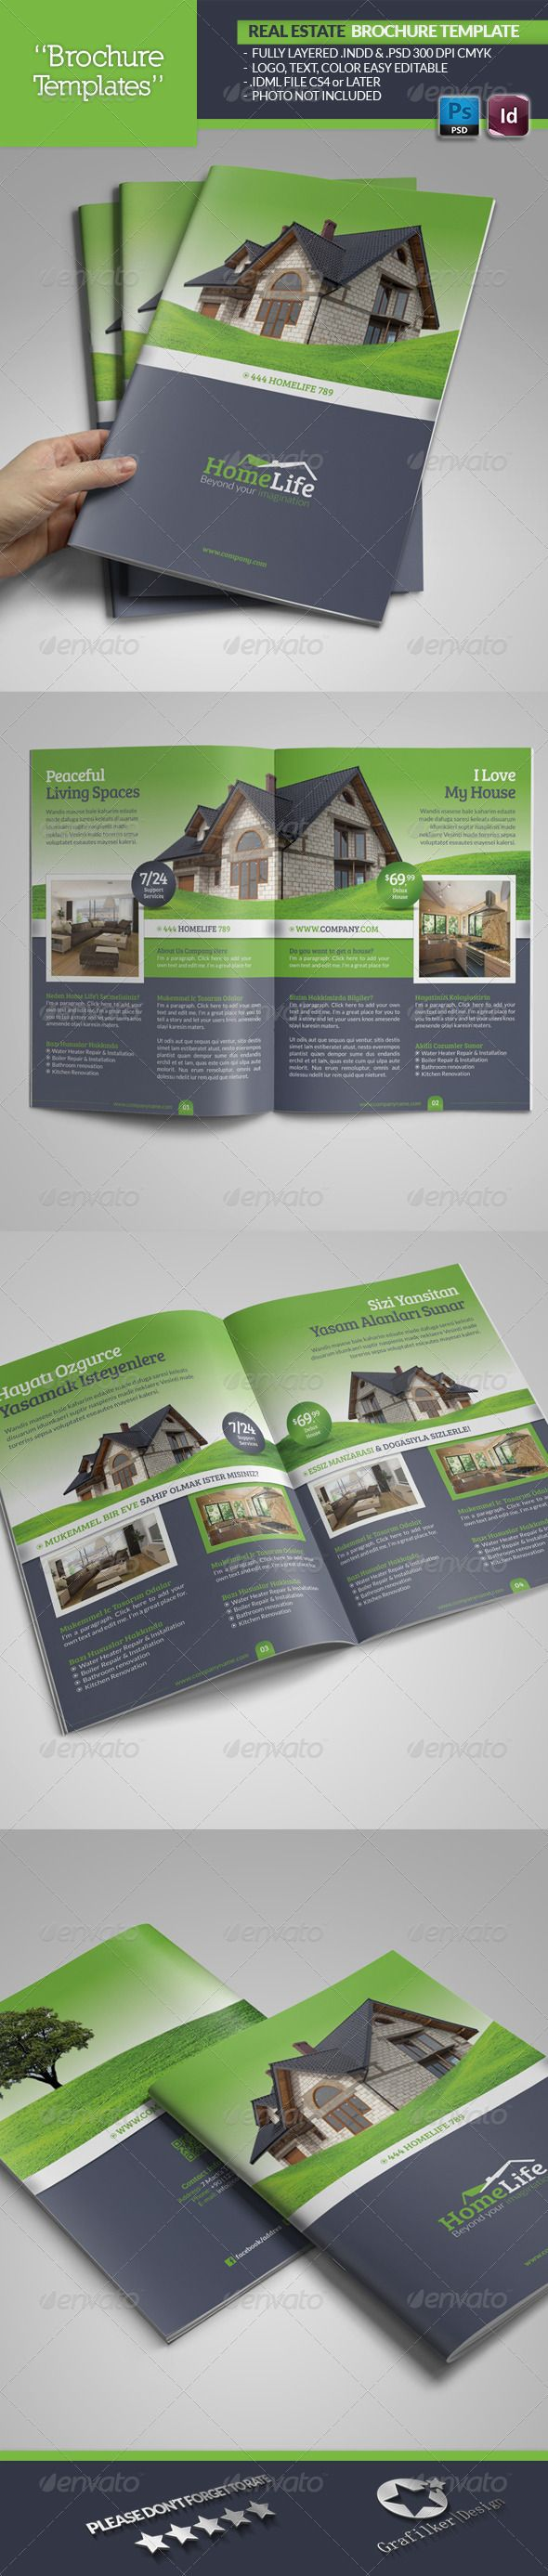 Real Estate Brochure Template  #GraphicRiver        Real Estate Brochure Template  Fully layered INDD   Fully layered PSD   300 Dpi, CMYK   IDML format open Indesign CS4 or later  Completely editable, print ready  Text/Font or Color can be altered as needed  All Image are in vector format, so can customise easily  Photos are not included in the file  Font File: Lato Font:  .fontsquirrel /fonts/lato Bree-serif:  .fontsquirrel /fonts/bree-serif   Help.txt file     Created: 29July13…